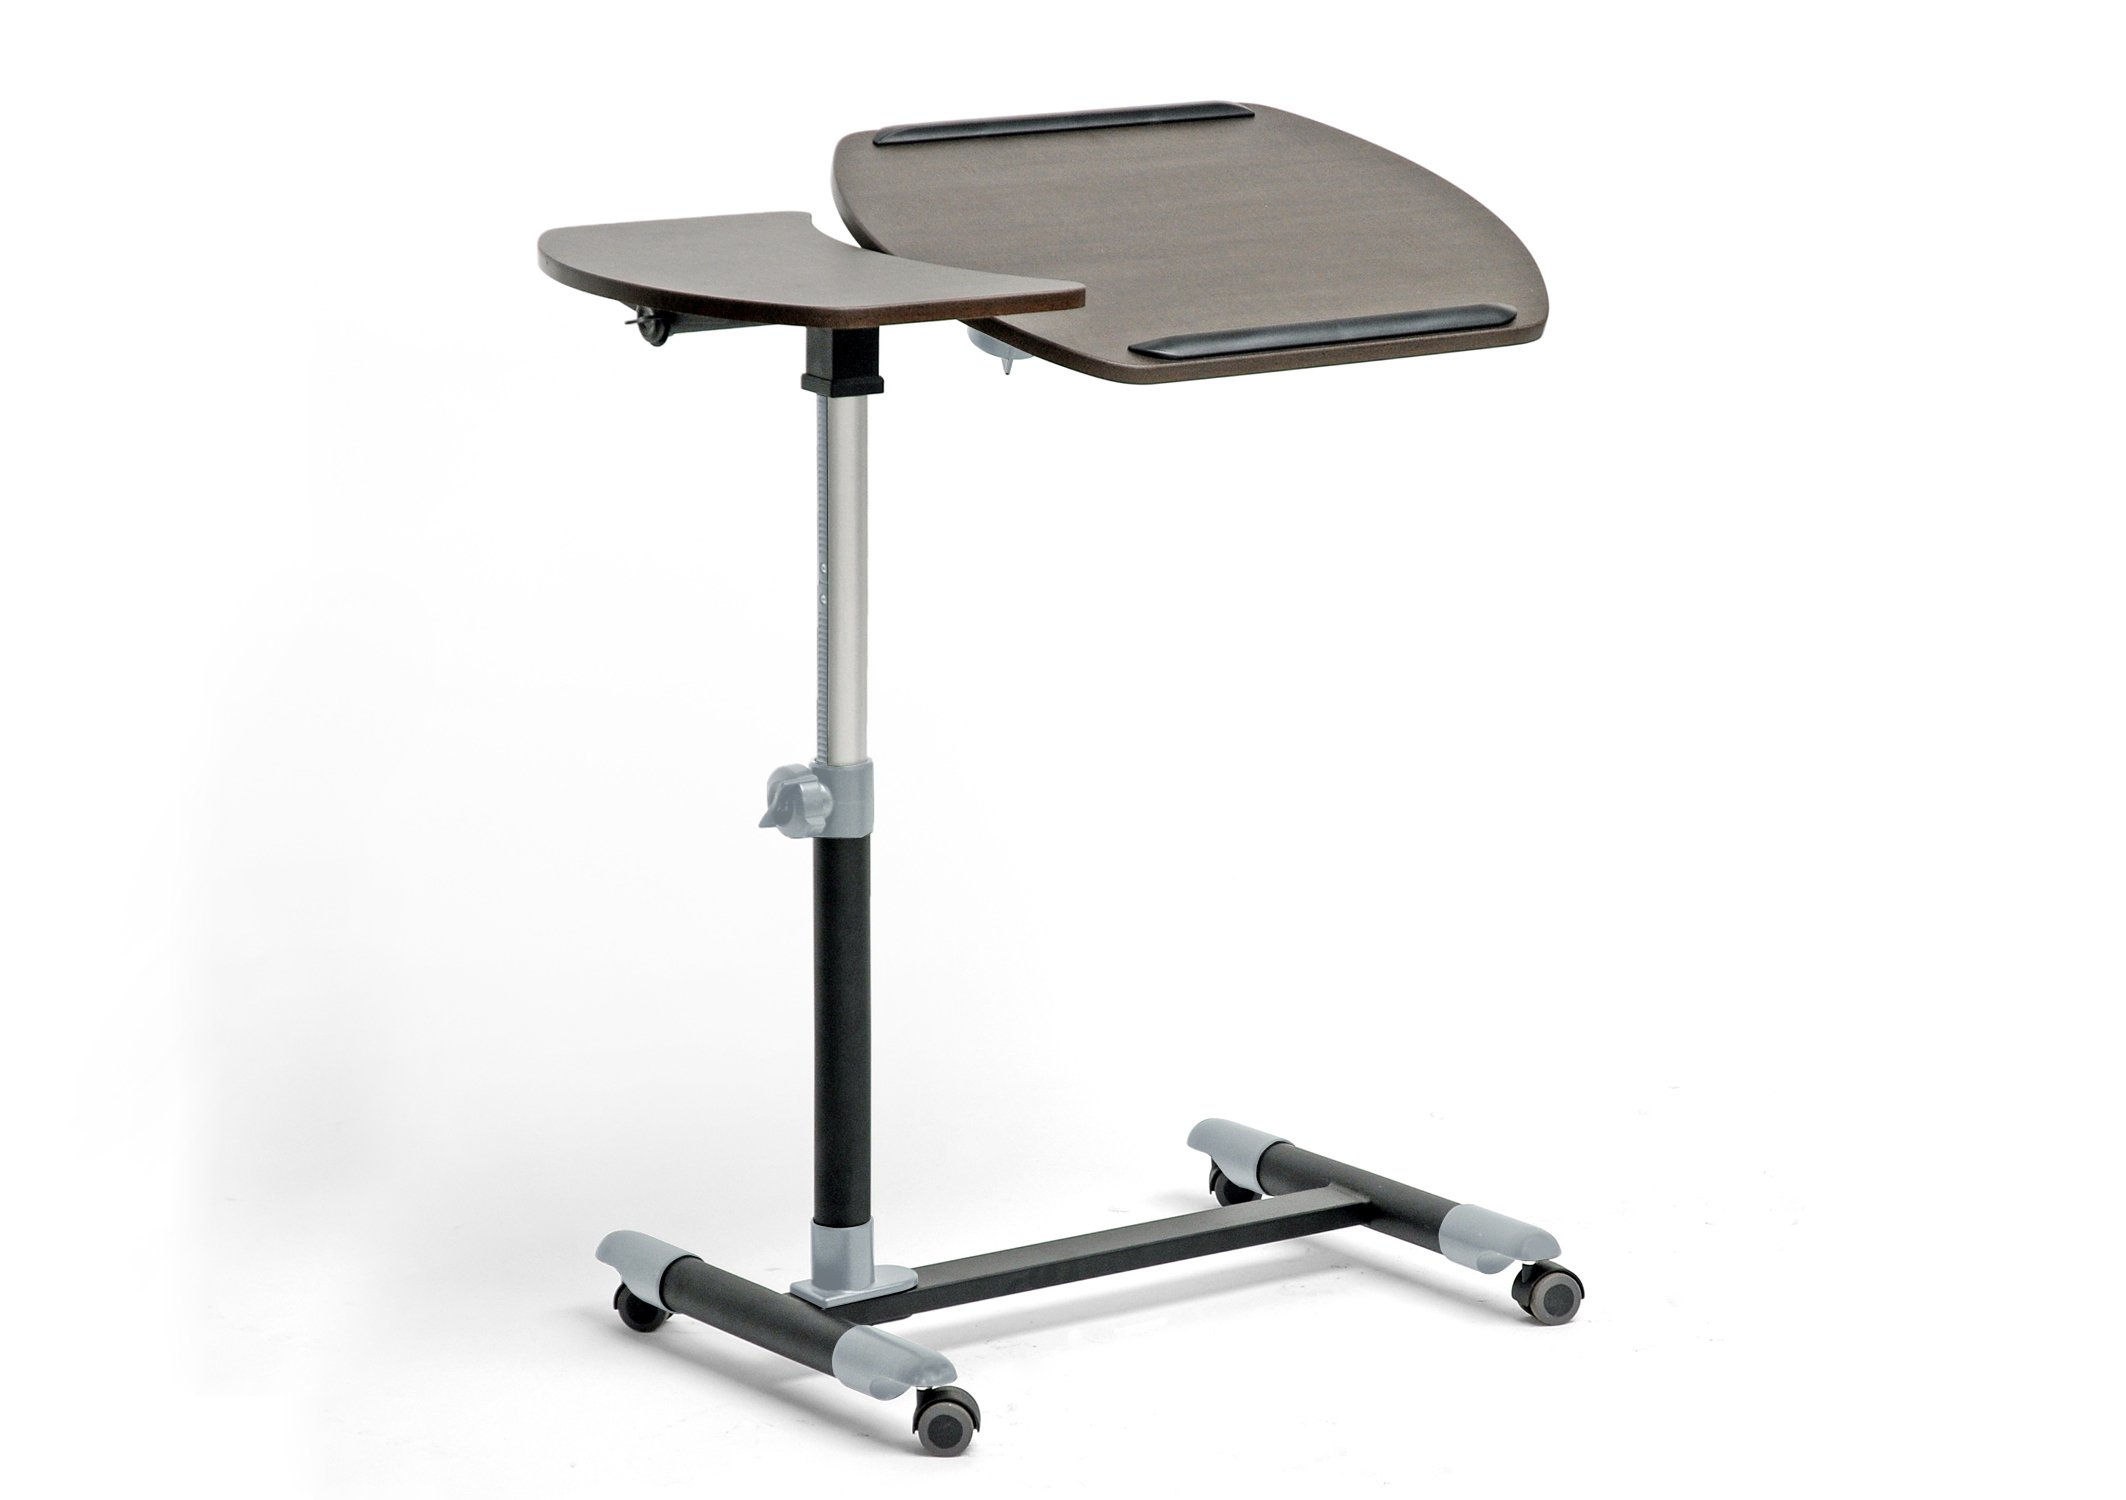 Baxton Studio Wheeled Laptop Tray Table with Tilt Control, Olsen Brown